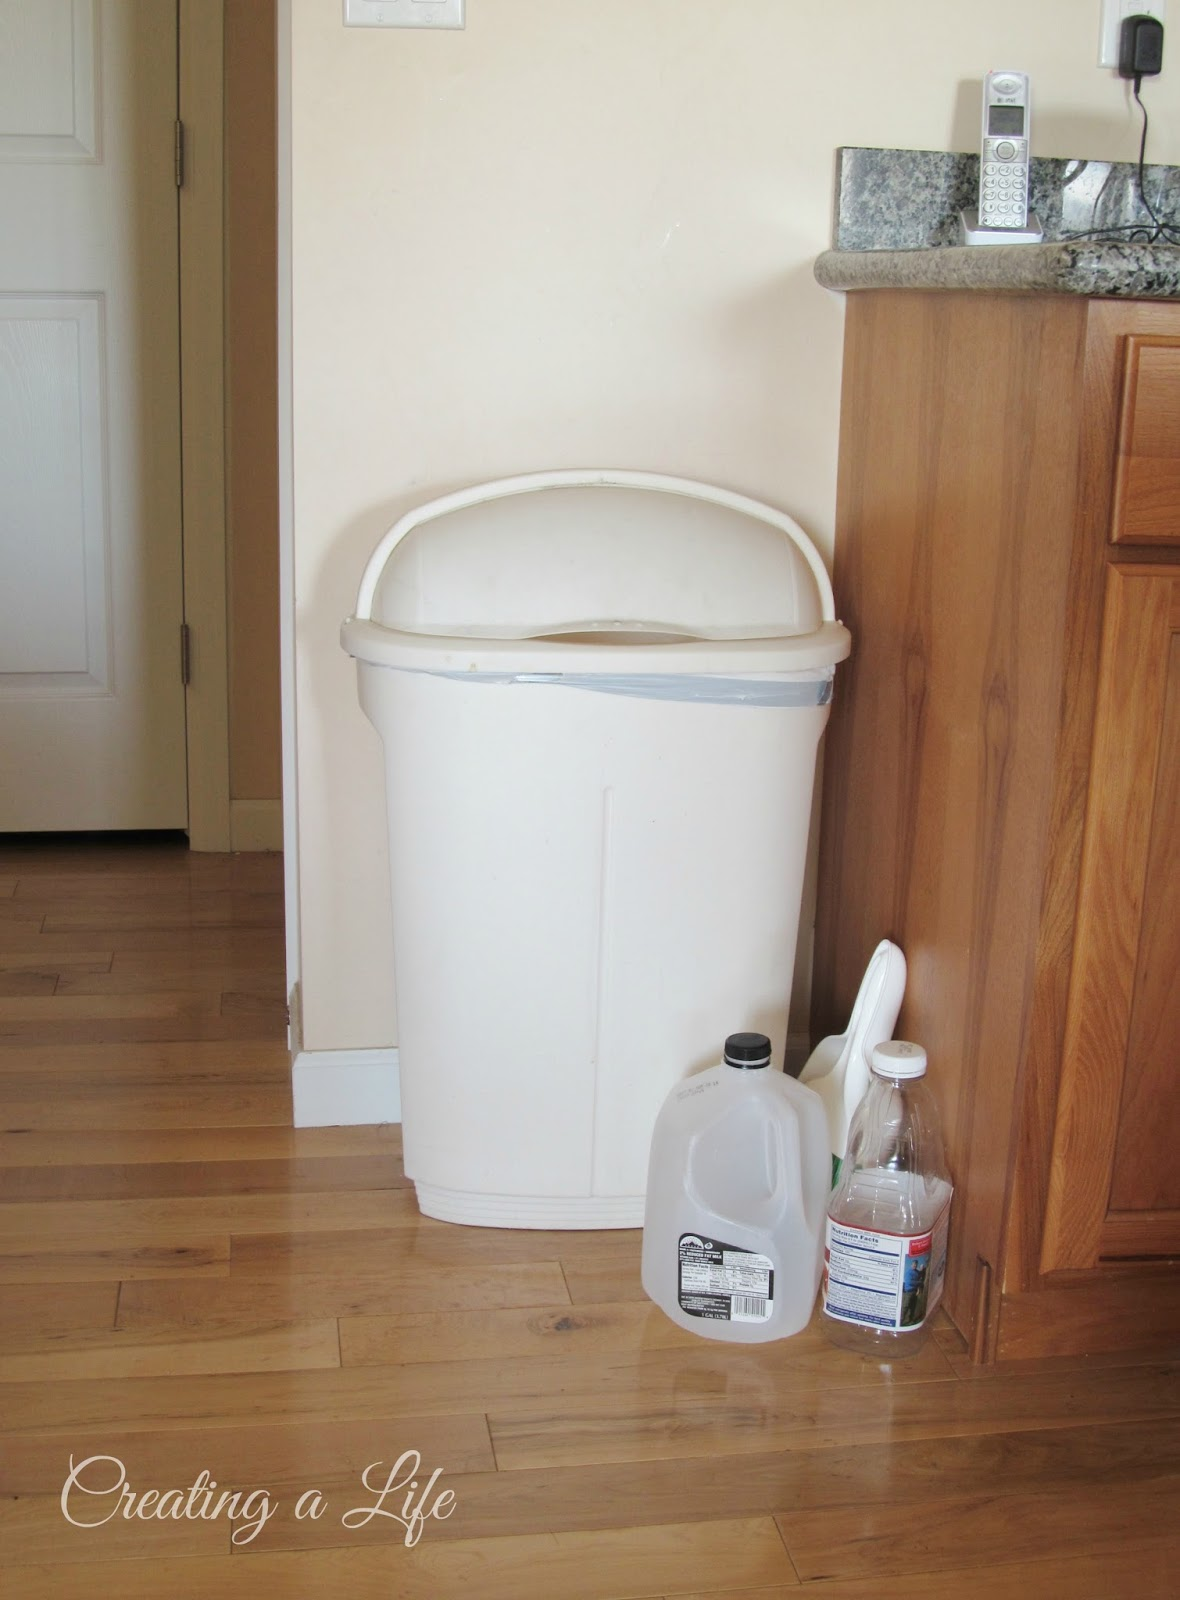 CabiStyle Kitchen Trash Cans